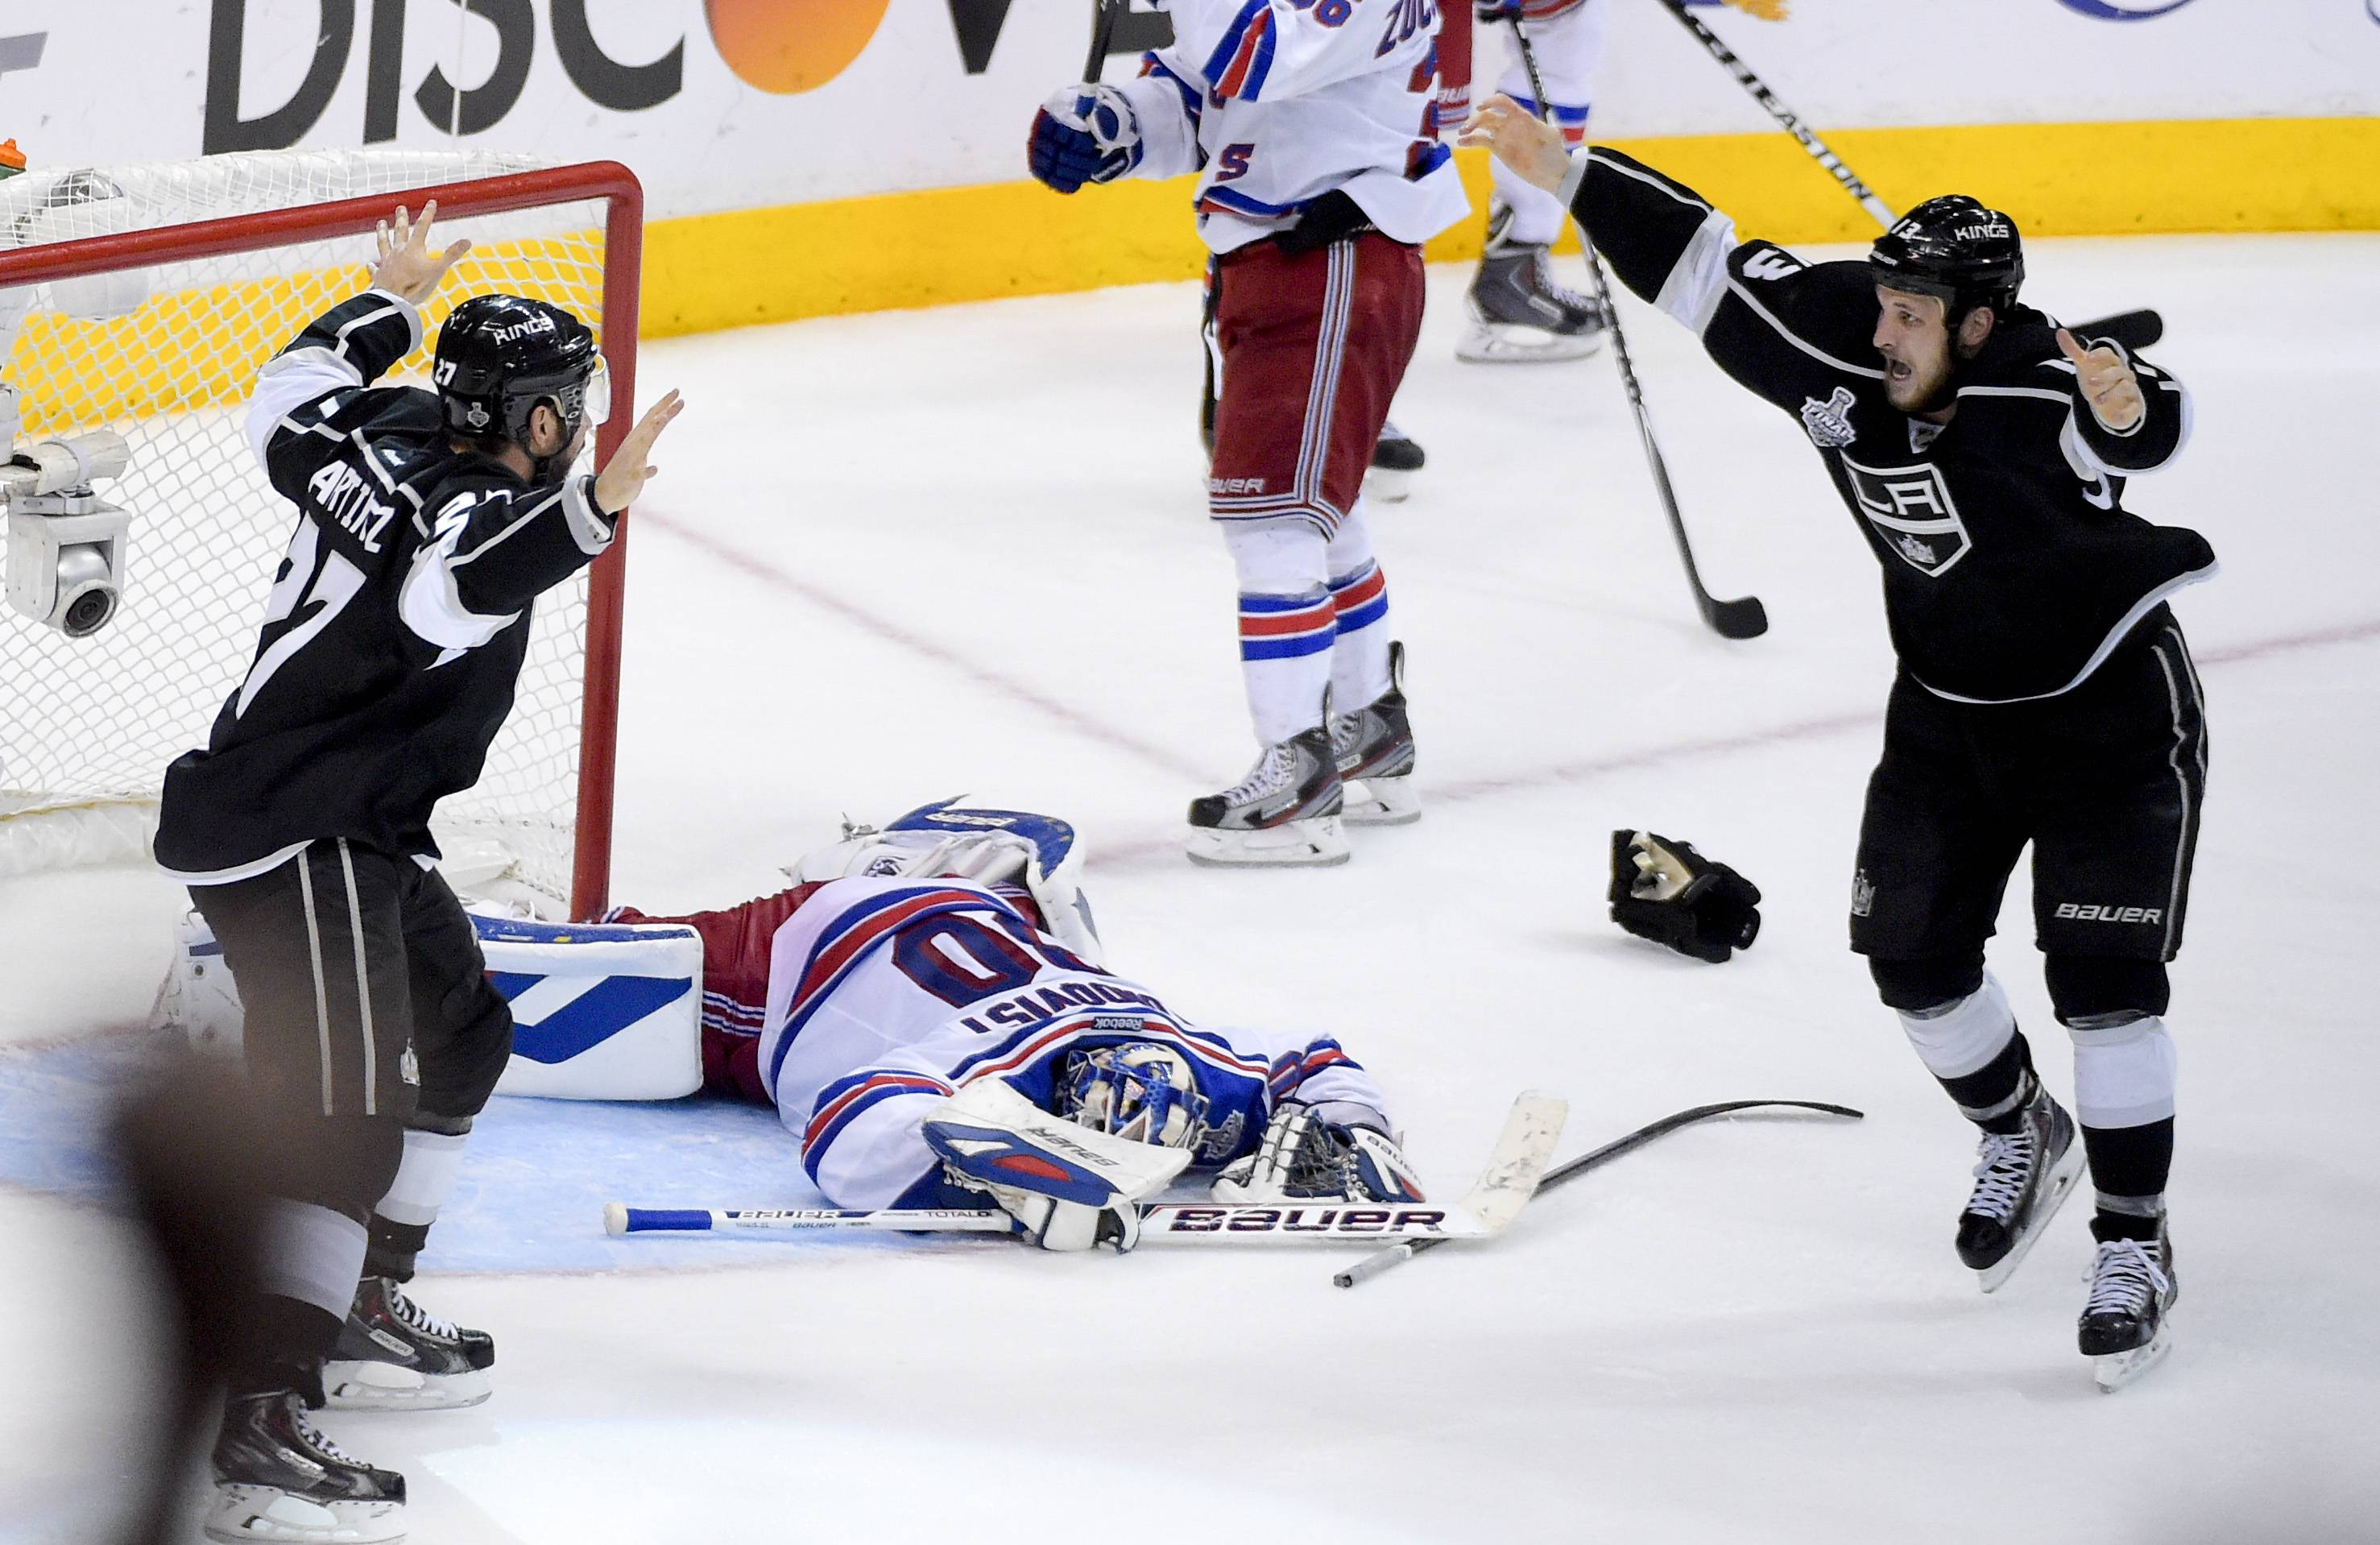 Los Angeles Kings defenseman Alec Martinez, left, celebrates with Kyle Clifford after scoring the winning goal past New York Rangers goalie Henrik Lundqvist during the second overtime period in Game 5 of the Stanley Cup Finals.